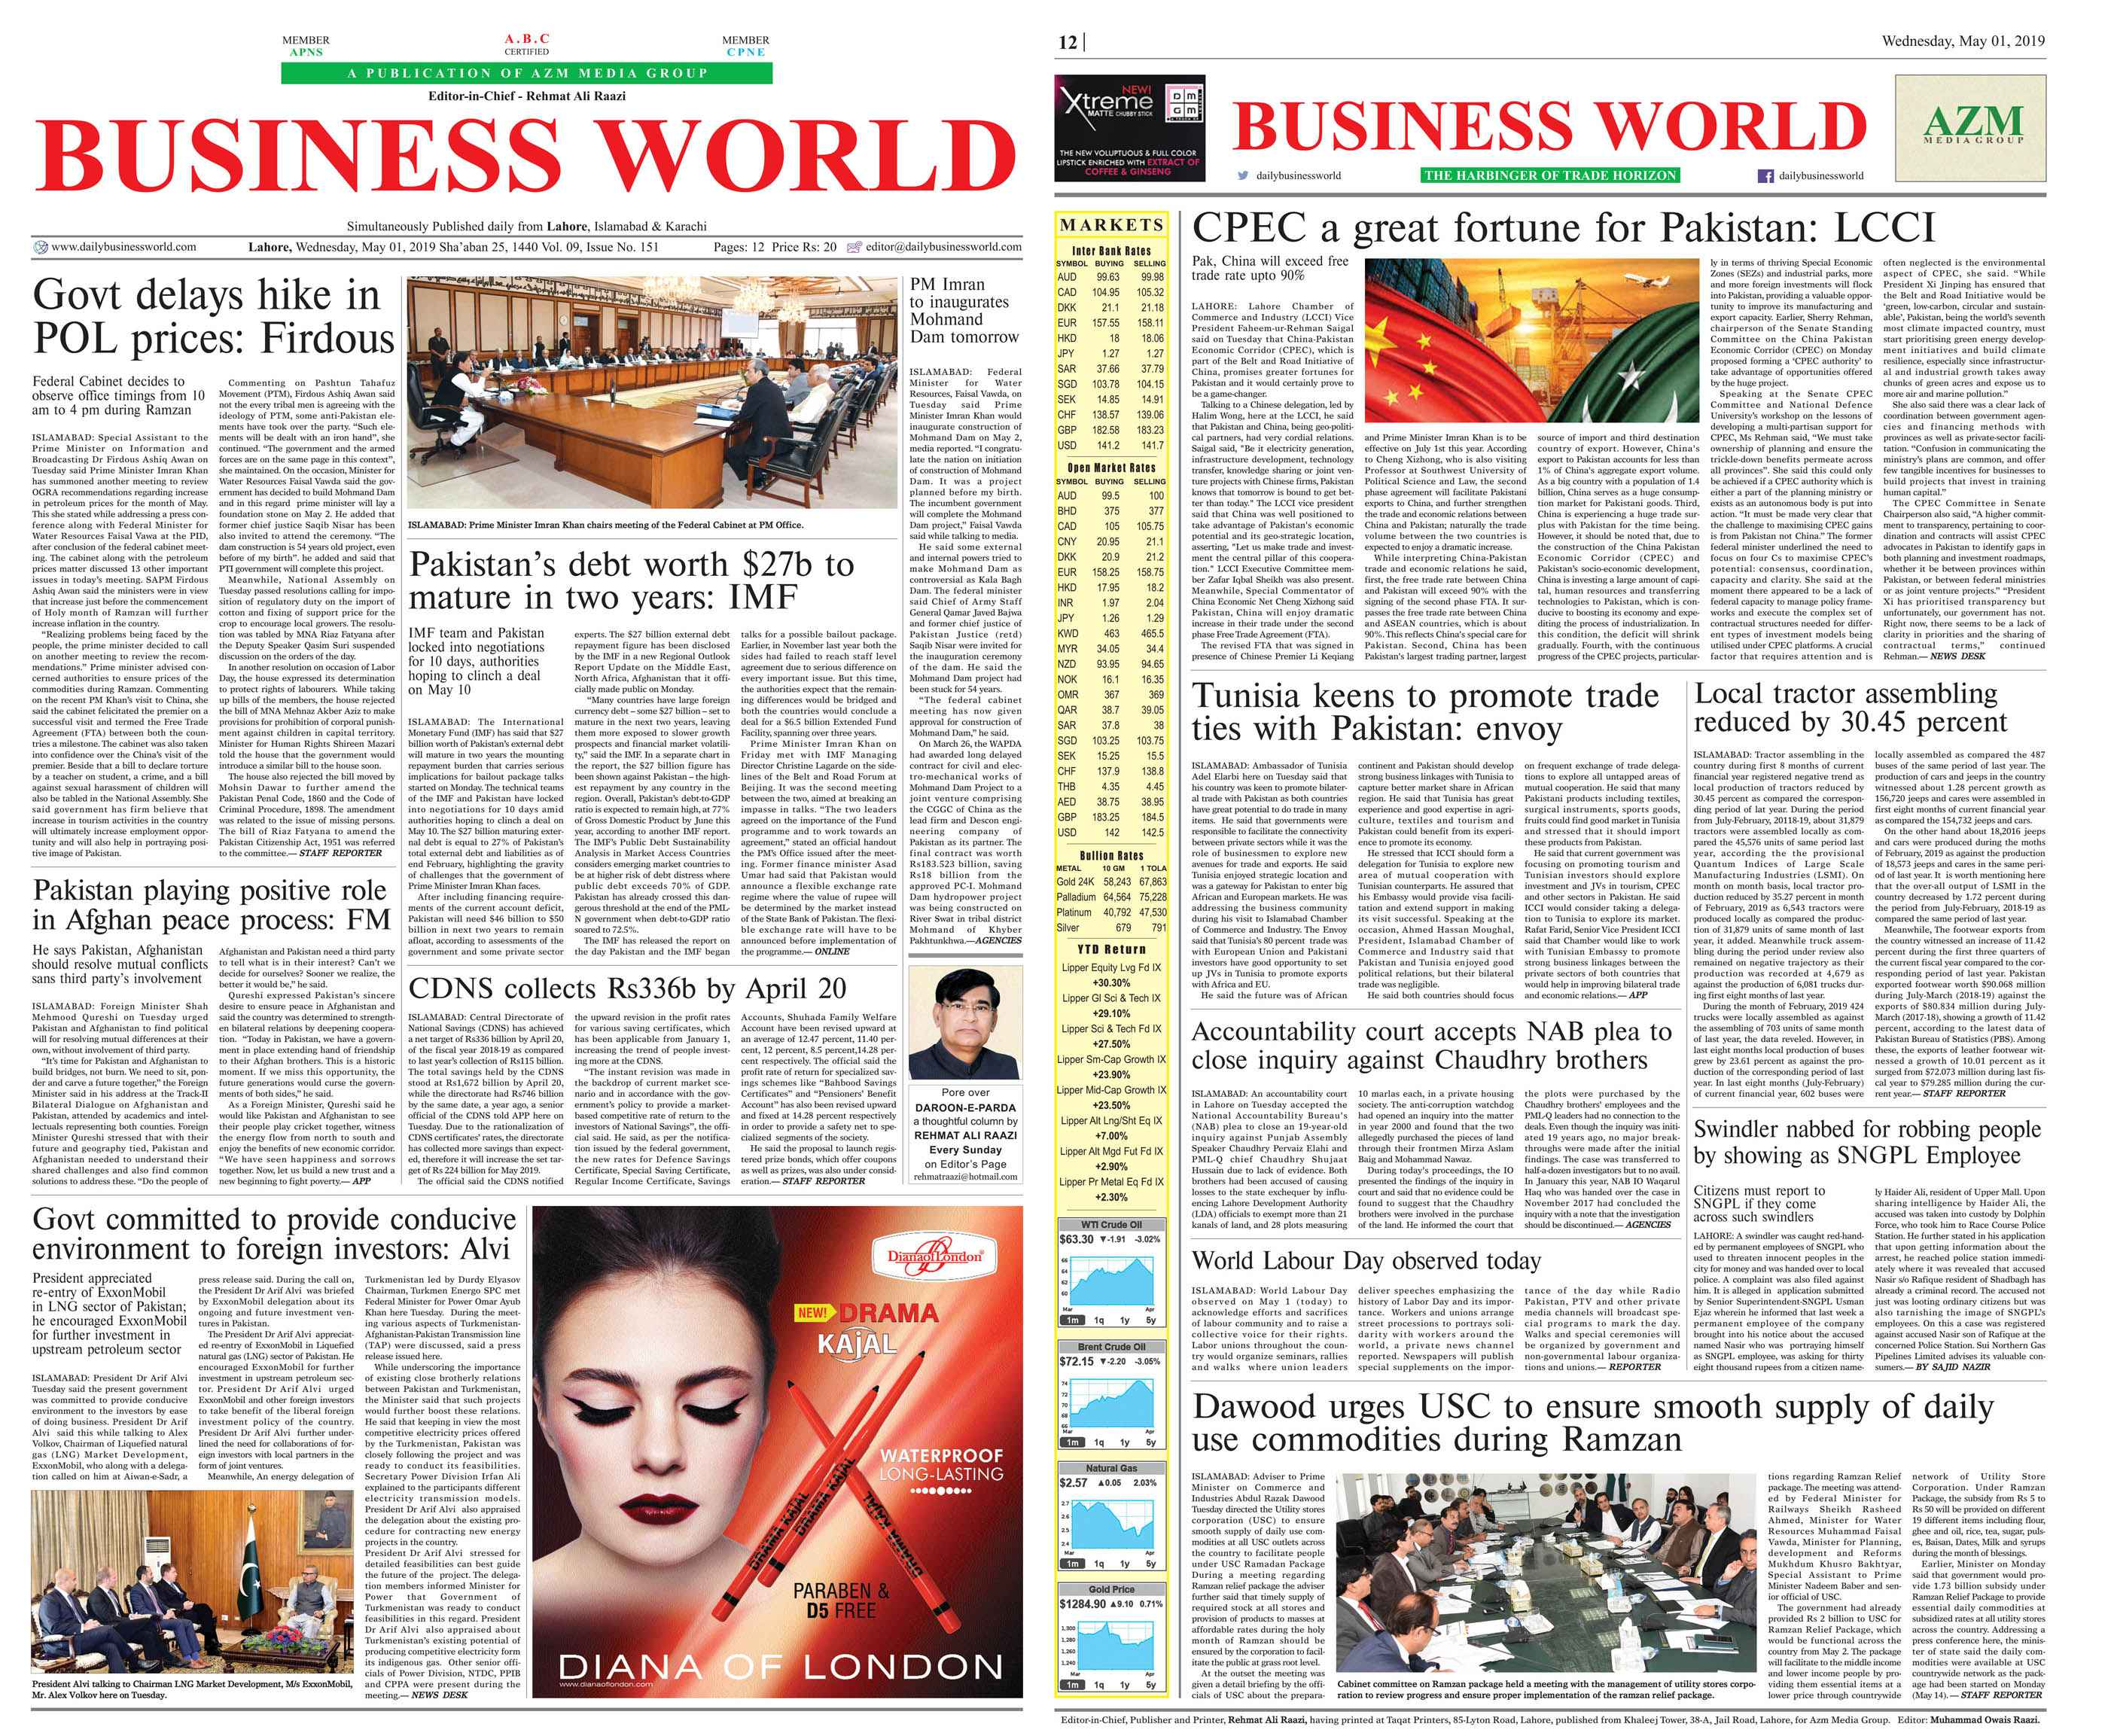 Daily Business World E-Paper 1st May 2019 - Daily Business World